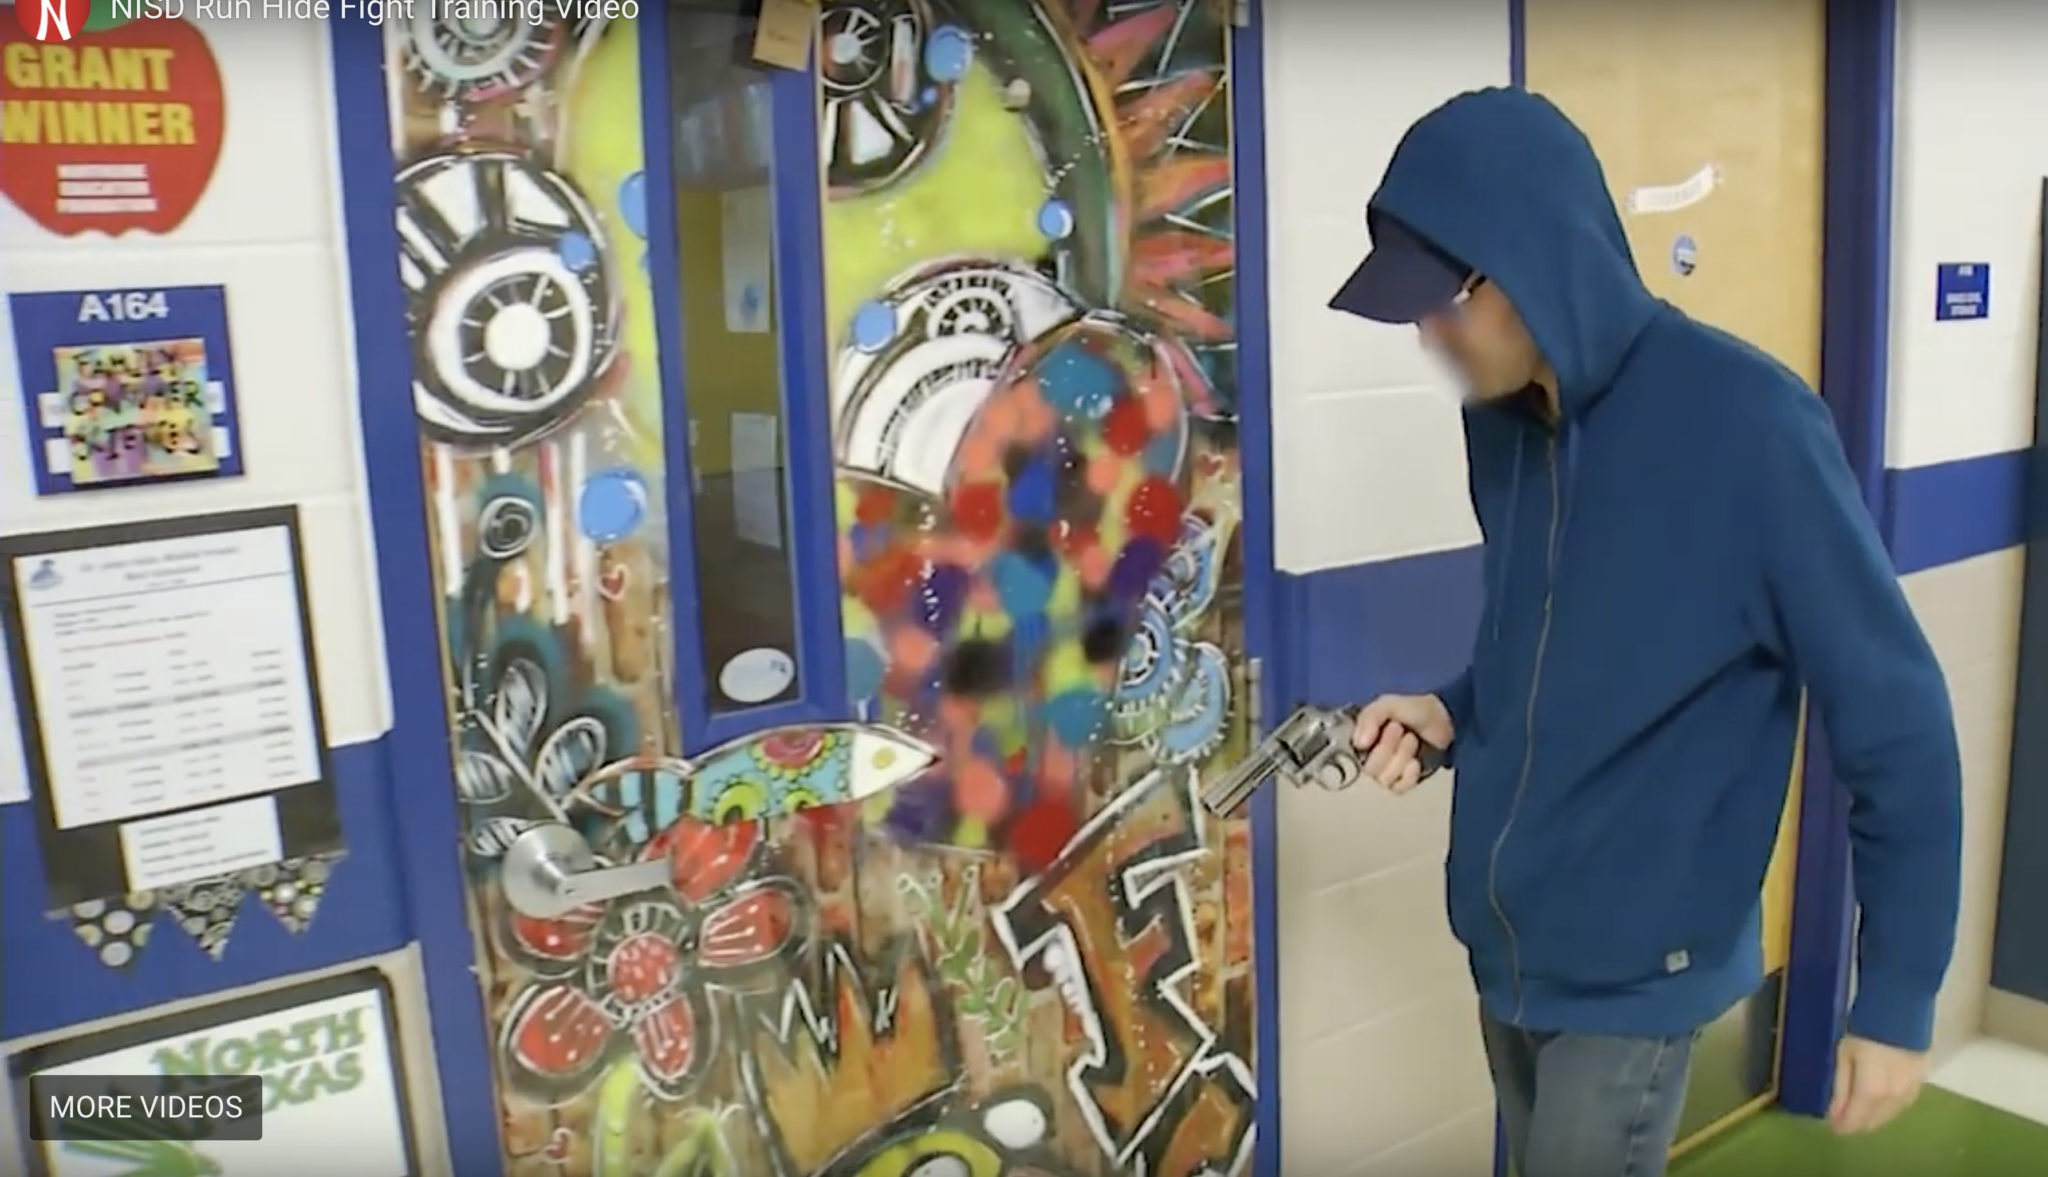 A training video from NISD demonstrates to students, faculty, and staff how to to run, hide, or fight during an active shooter situation.